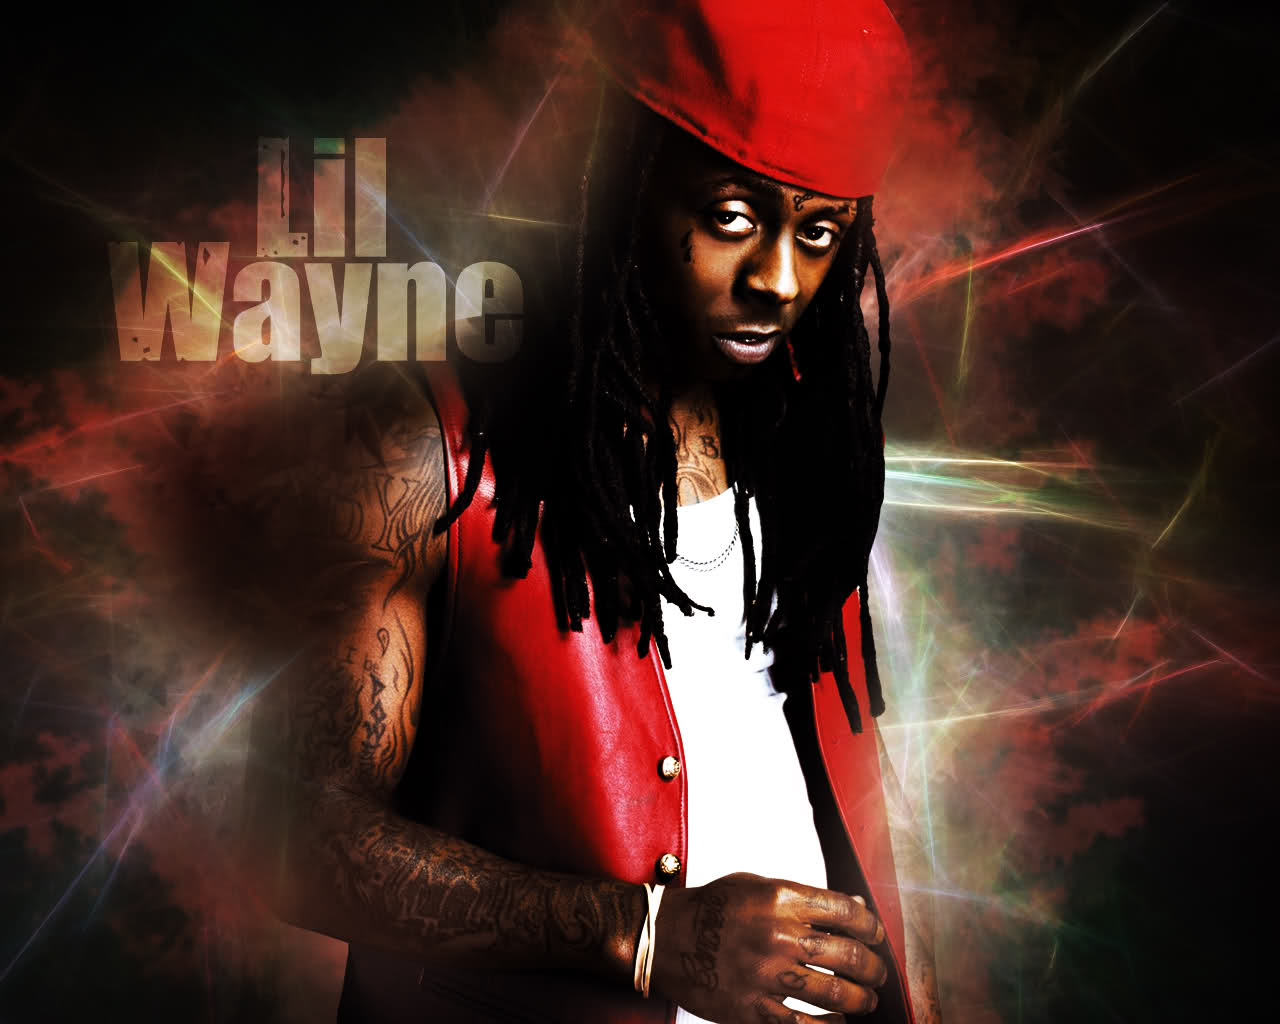 Lil Wayne Wallpapers HDHD Wallpapers 1280x1024